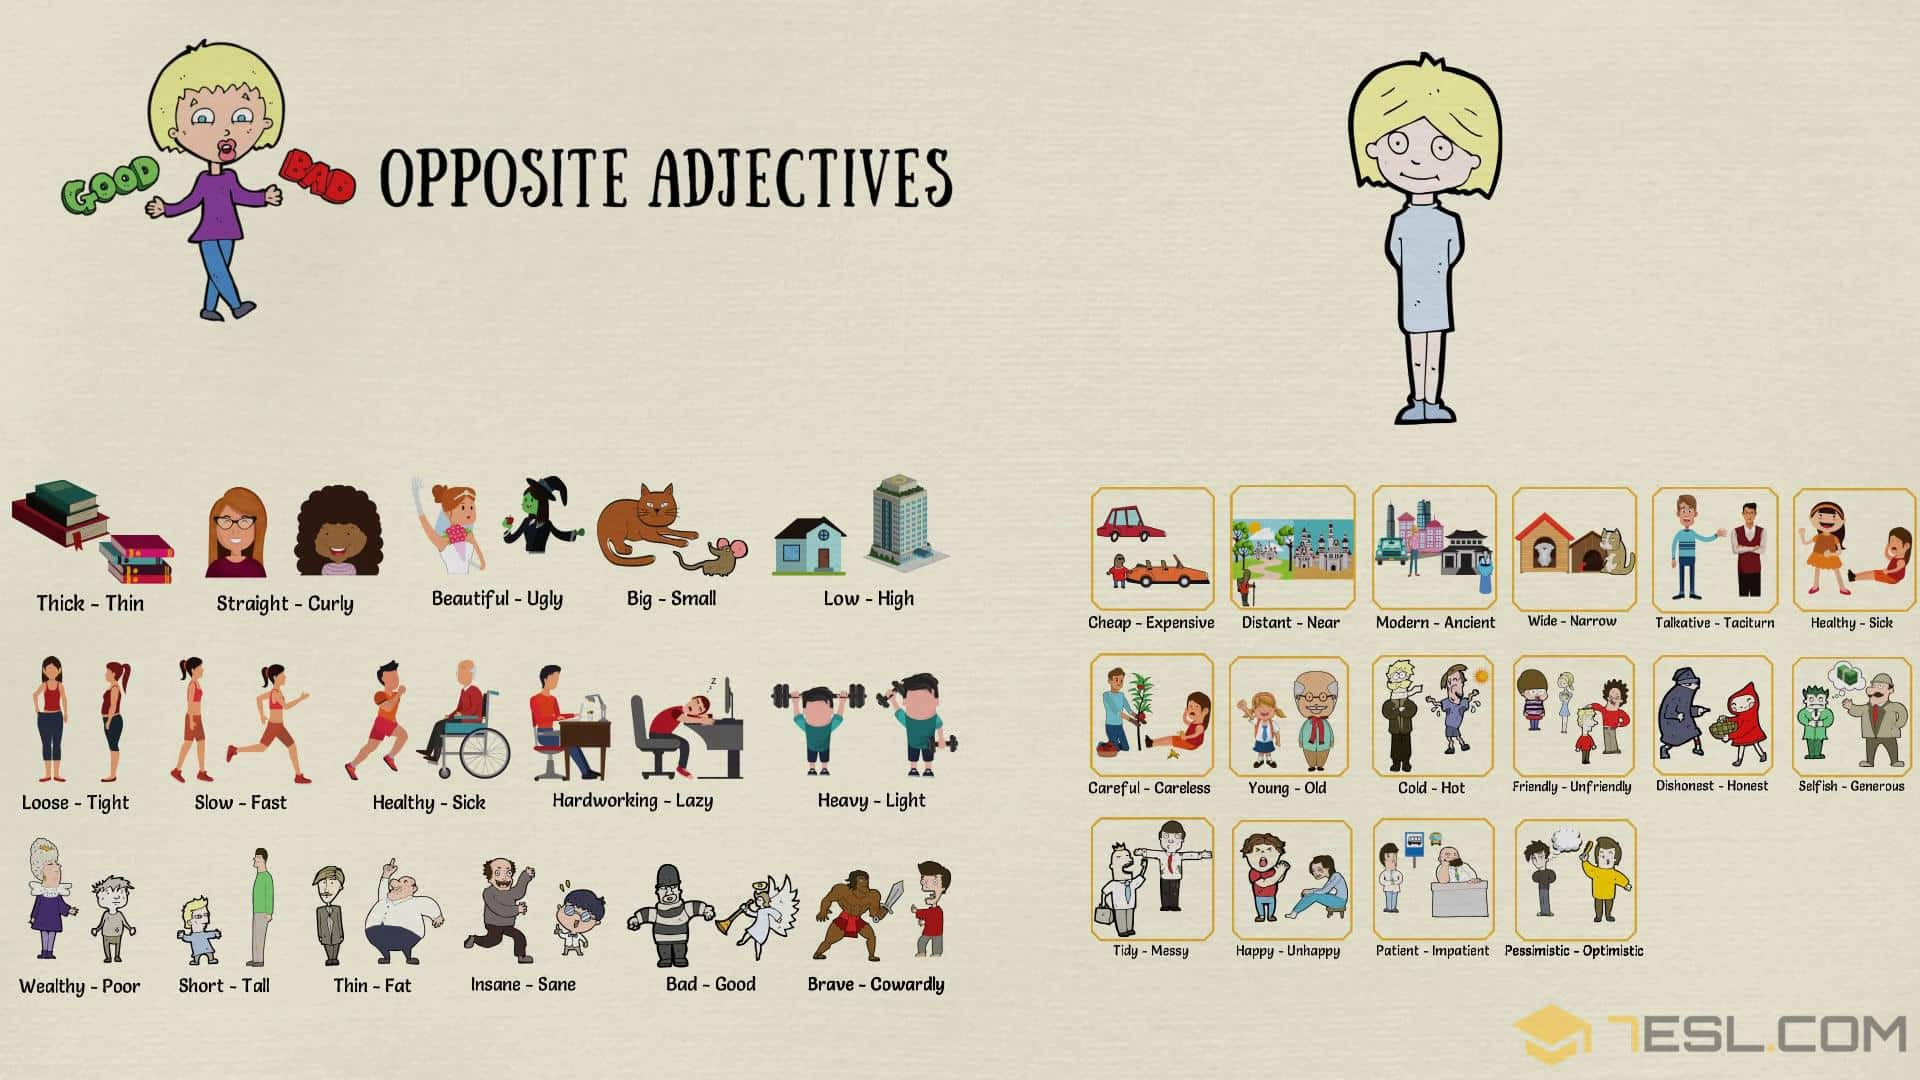 Opposite Adjectives: List of Opposites of Adjectives with Pictures